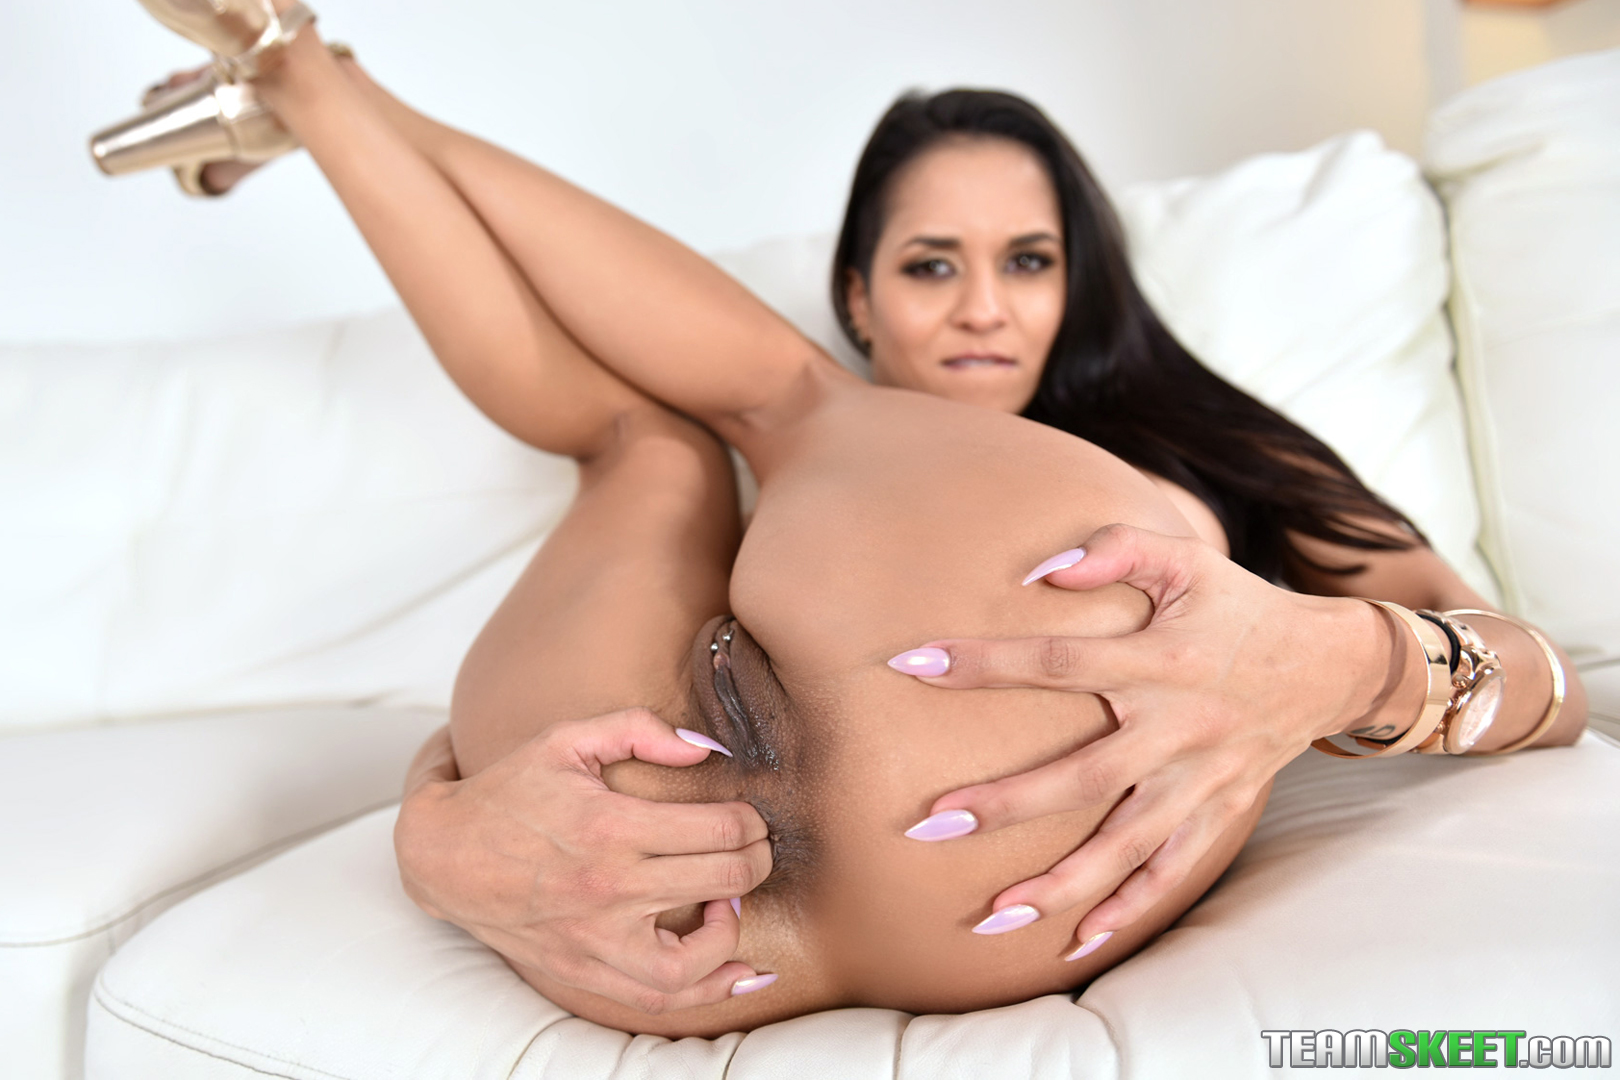 Anal Brazilian 02 - anal sex tube videos and pictures